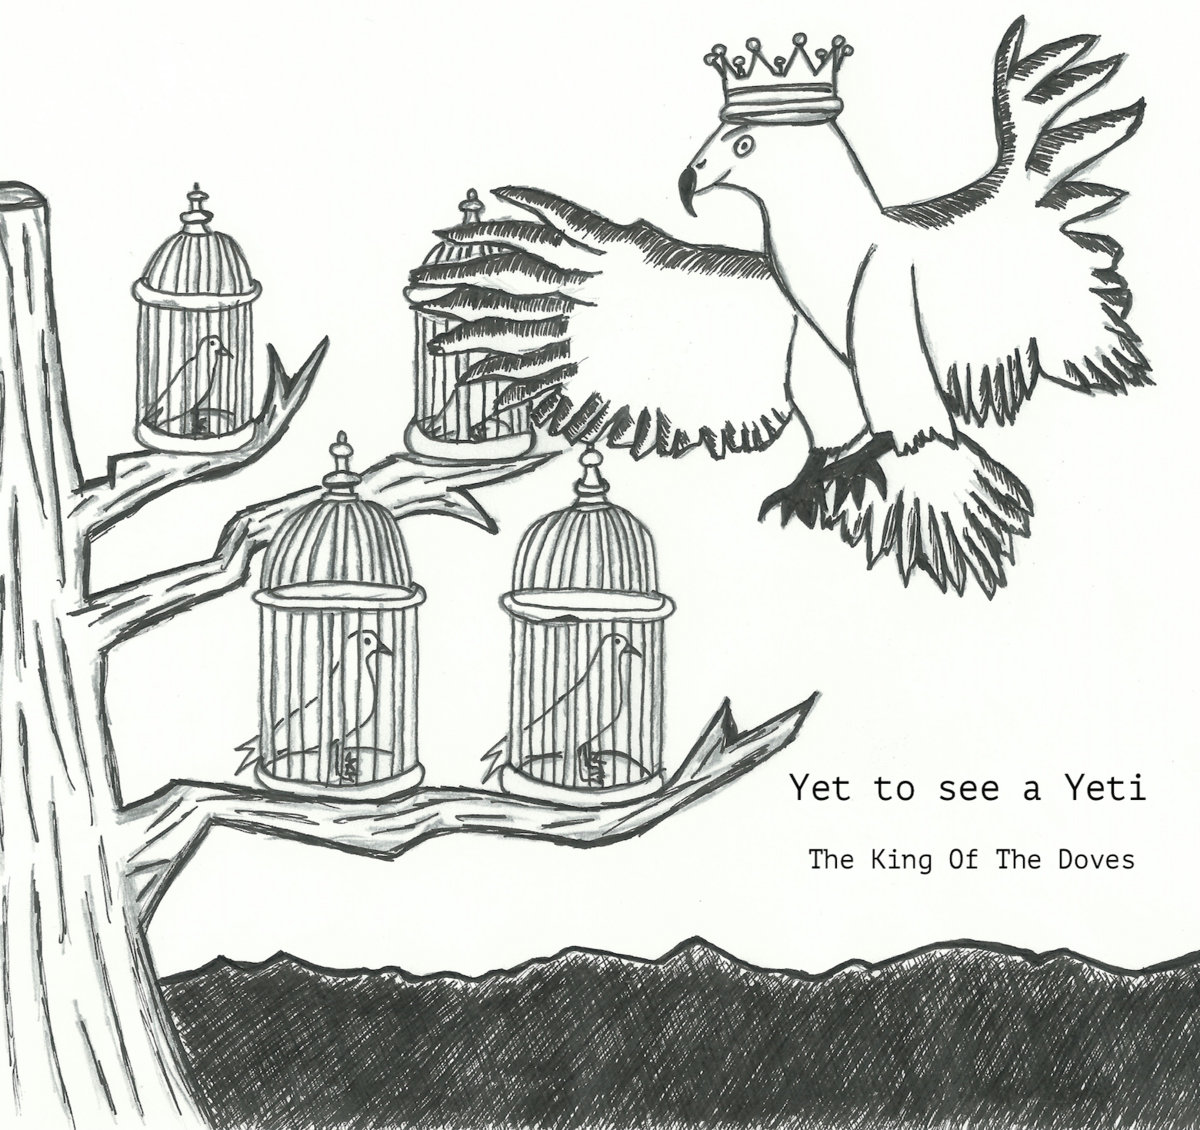 https://yettoseeayeti.bandcamp.com/album/the-king-of-the-doves